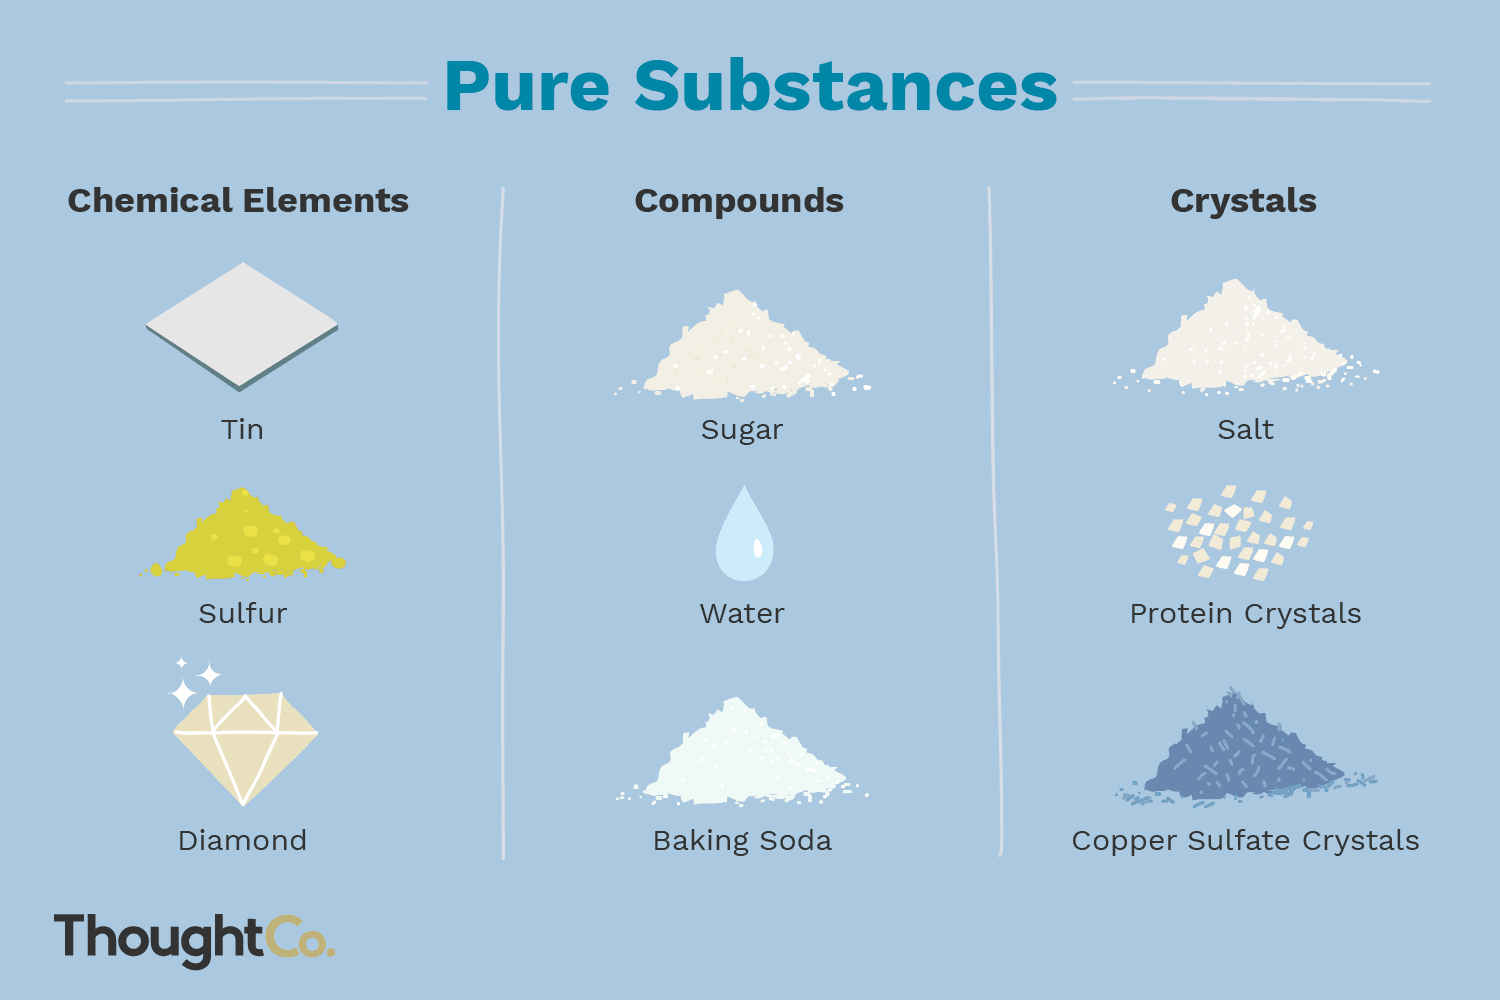 what are examples of pure substances?